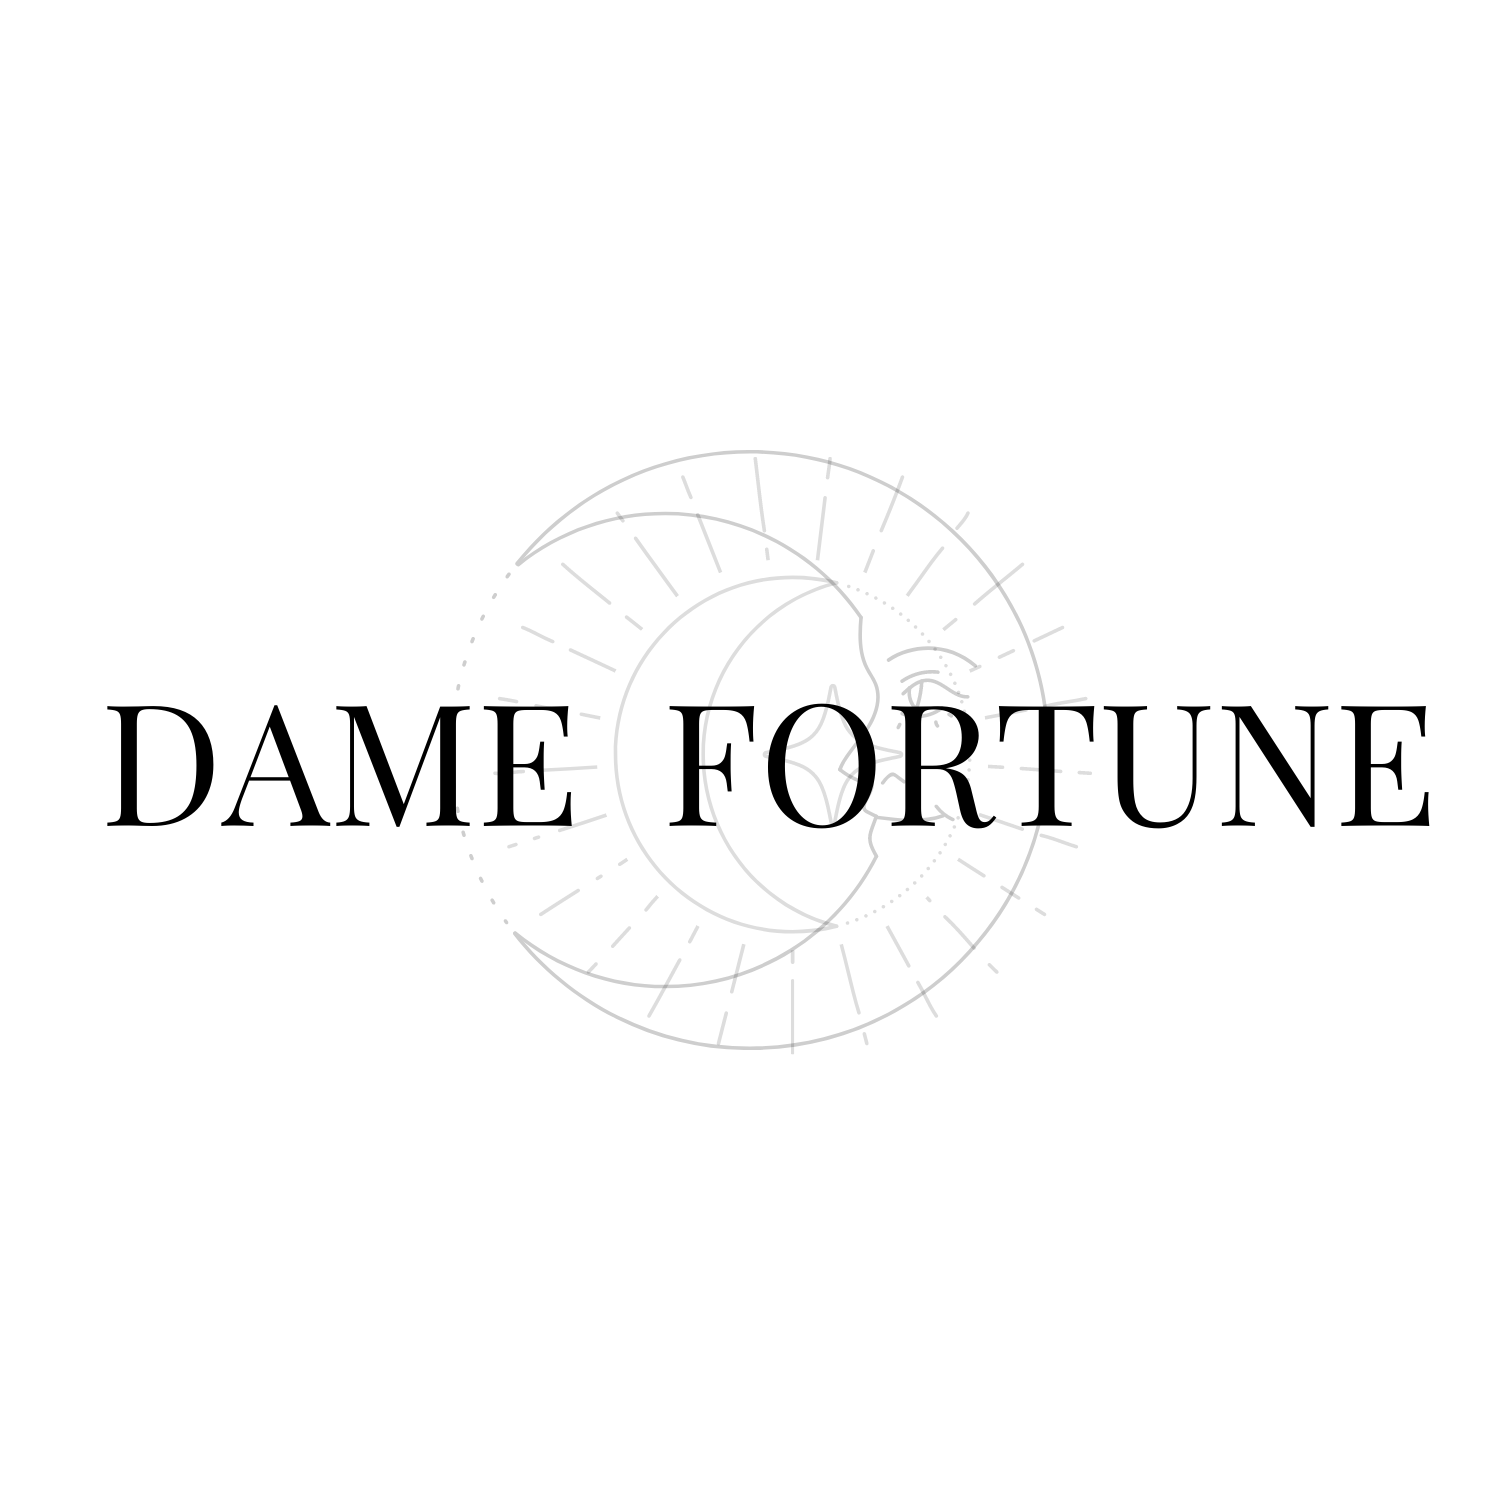 Dame Fortune's account image